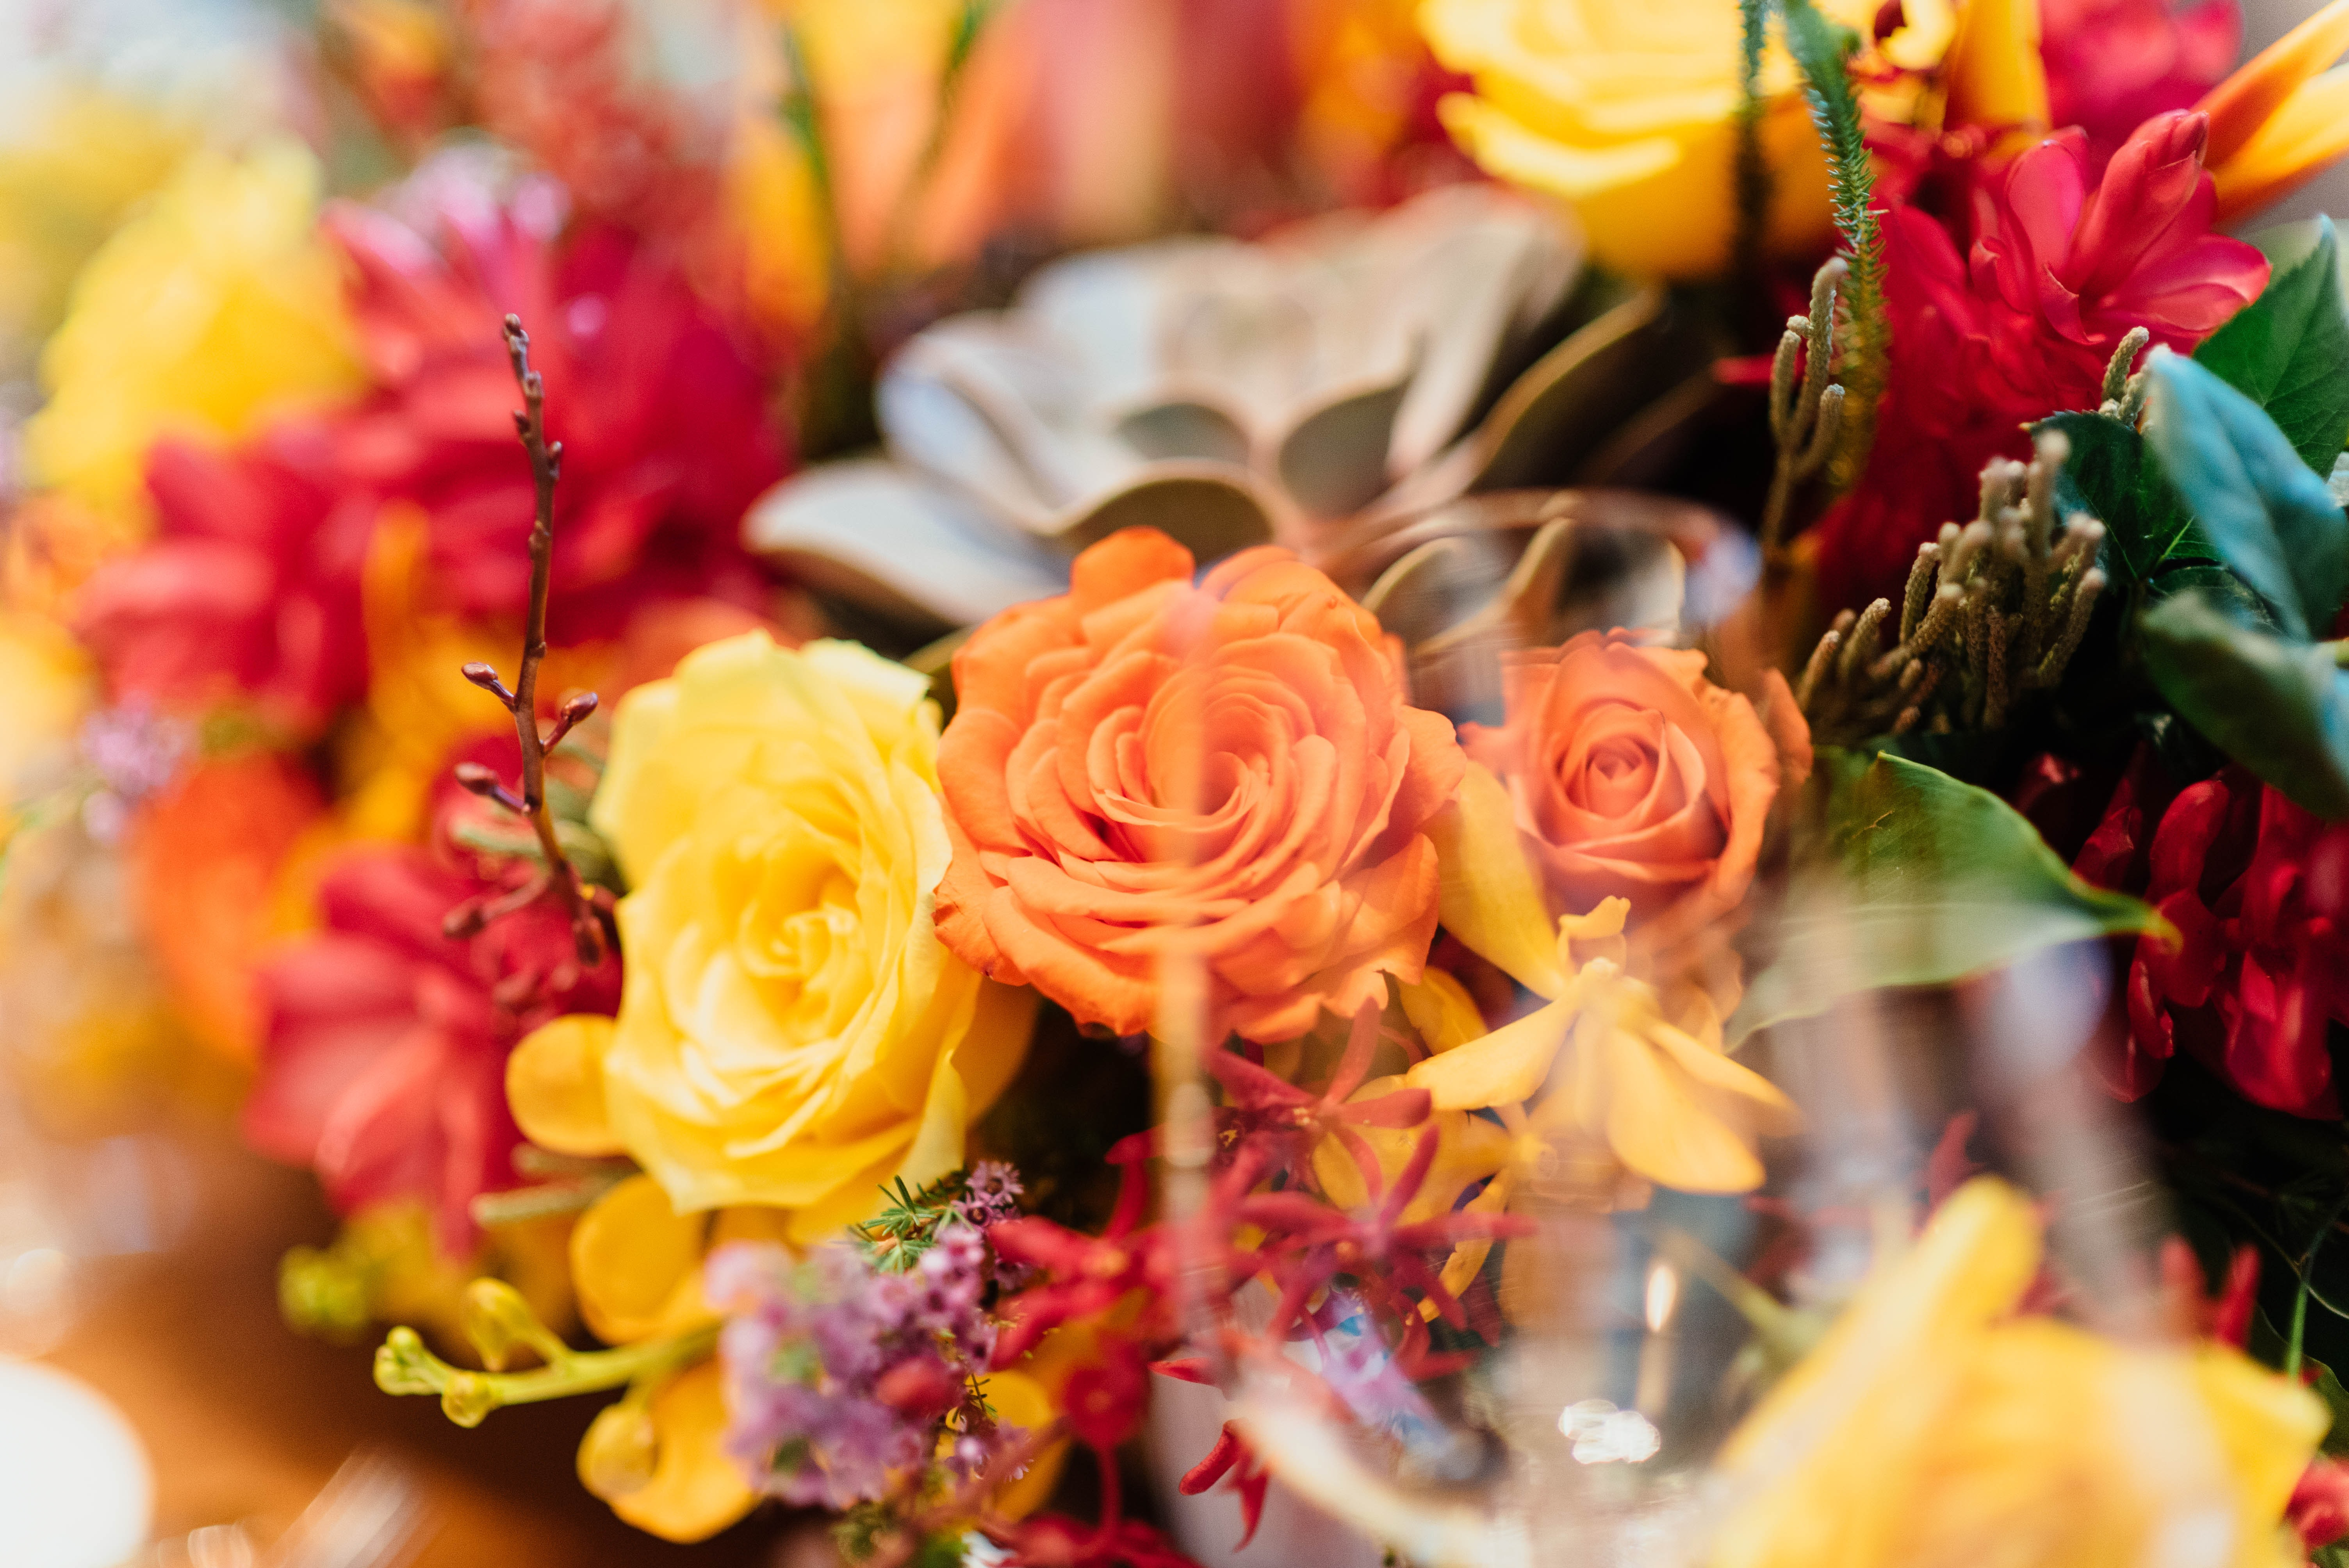 selective focus photography of red, yellow, and orange flower bouquet